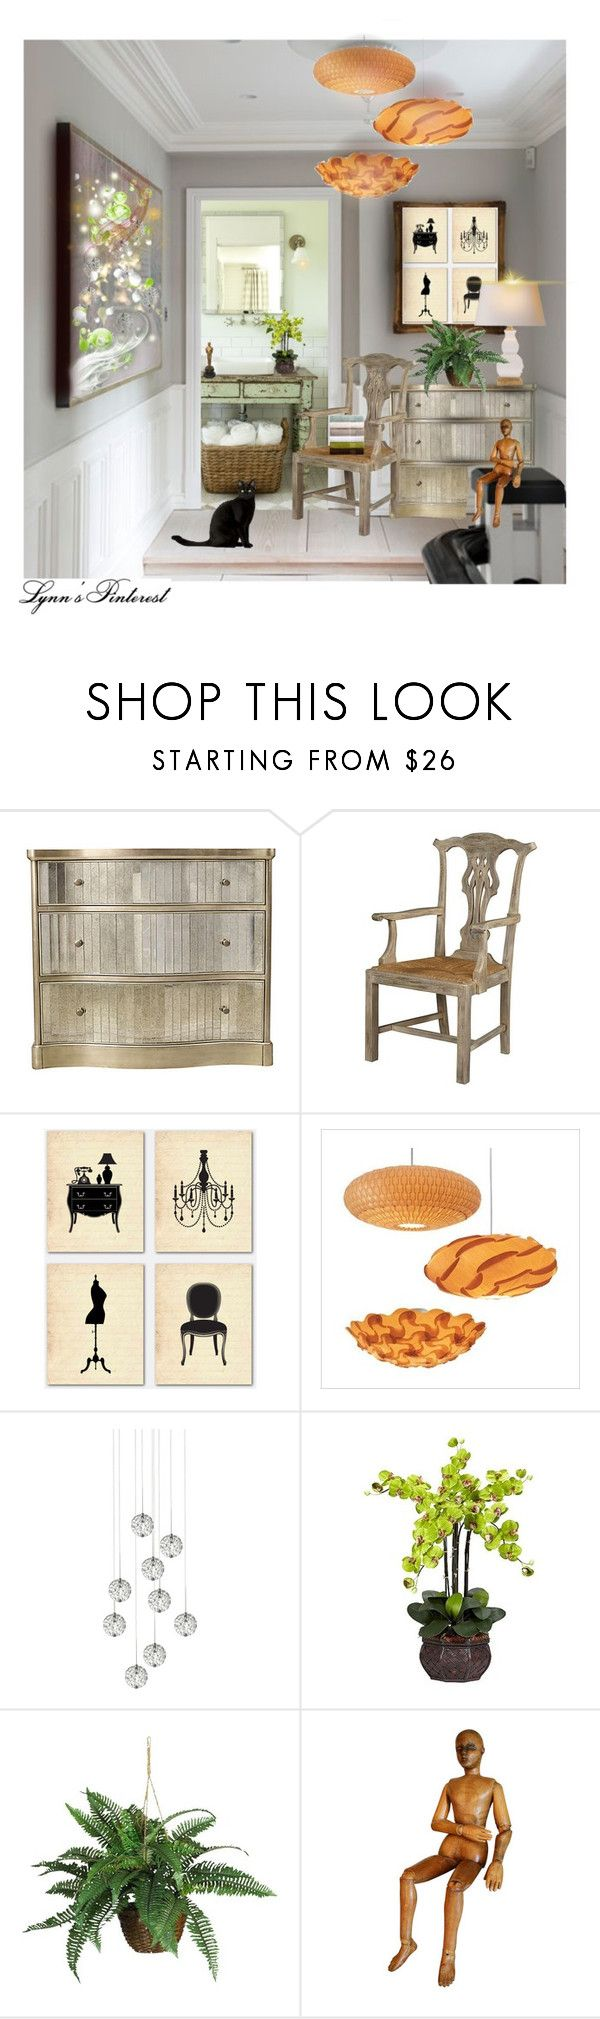 """The Upstairs Hallway 34 - #3059"" by lynnspinterest ❤ liked on Polyvore featuring interior, interiors, interior design, home, home decor, interior decorating, Hooker Furniture, Furniture Classics, WALL and dform"